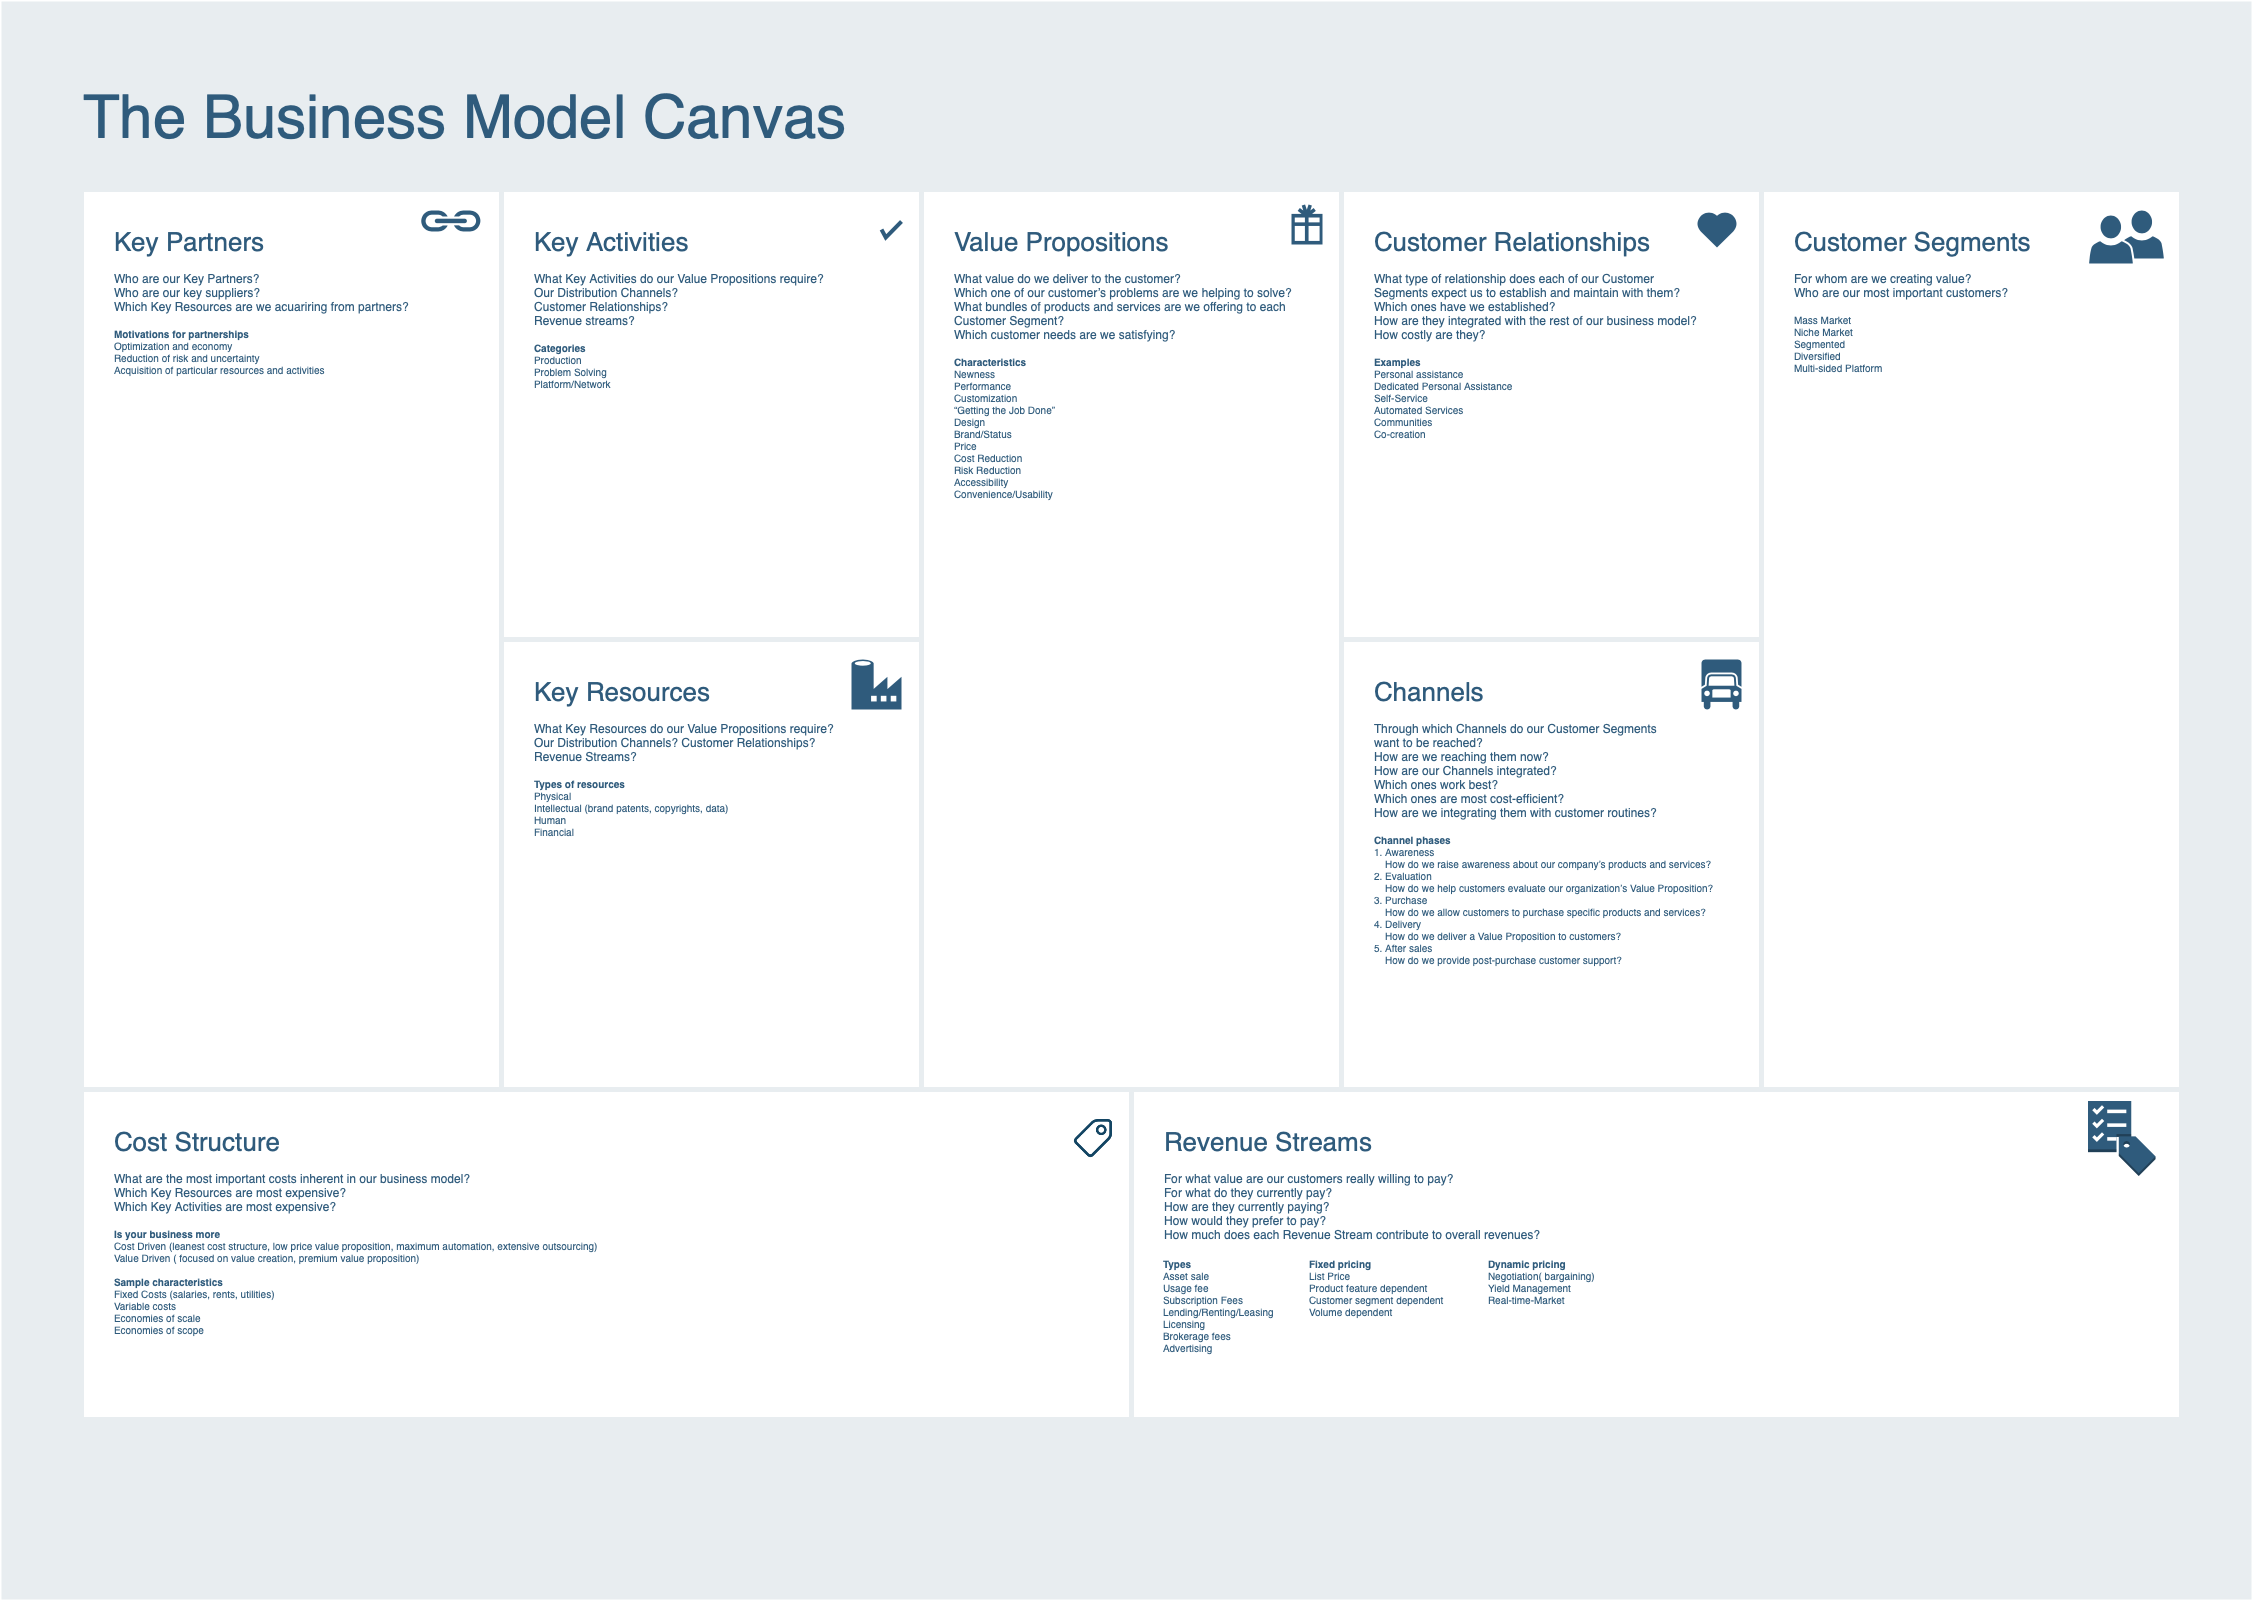 Business Model Canvas Looks Behind The Scenes At What Is Needed In Your Order To Support Marketing Product Development And Delivery